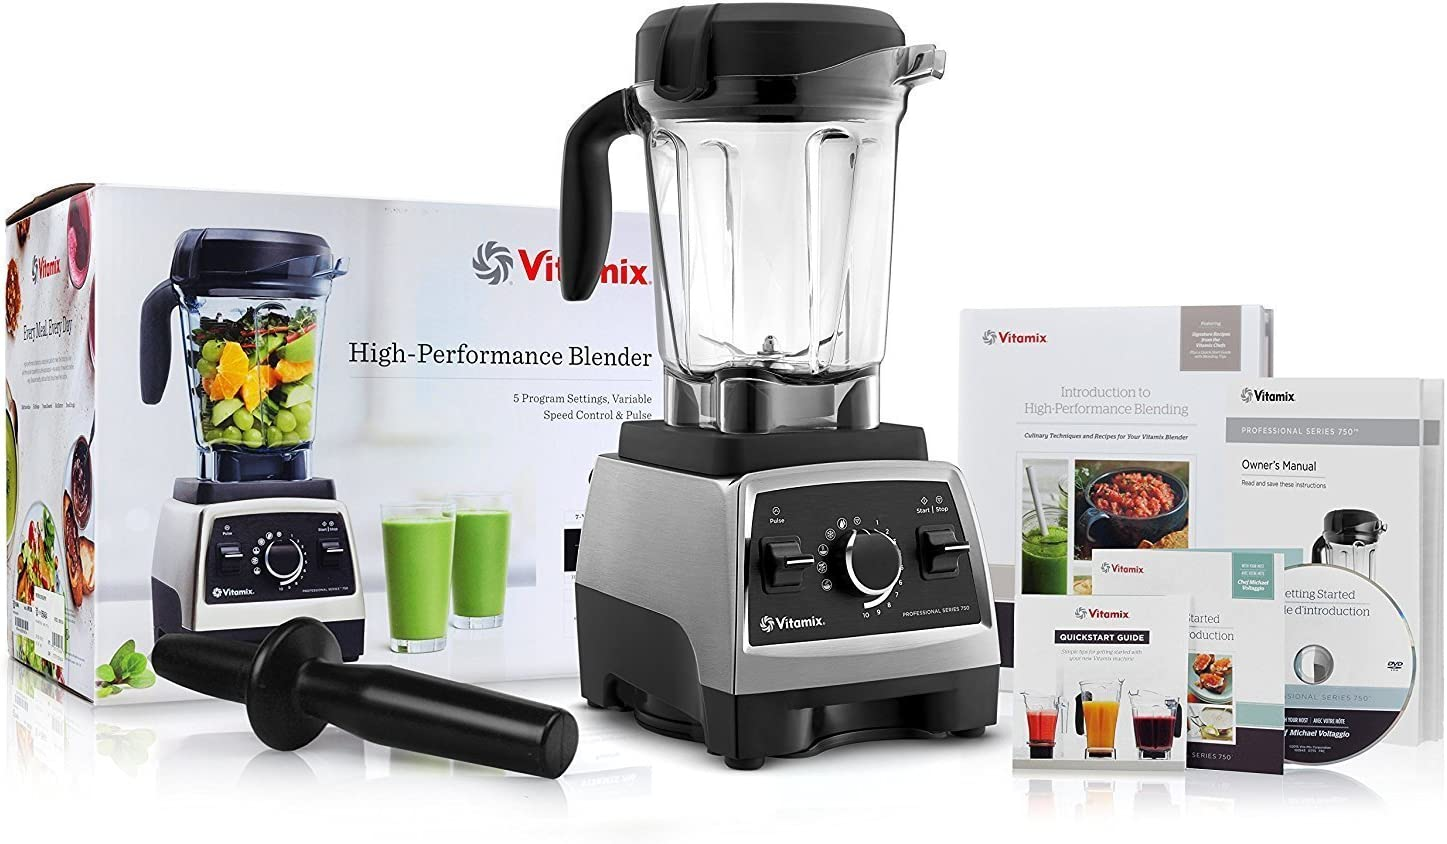 Vitamix 750 Heritage G-Series Blender with 64-Ounce Container Introduction to High Performance Blending Recipe Cookbook Getting Started DVD QuickStart Guide Low-Profile Tamper